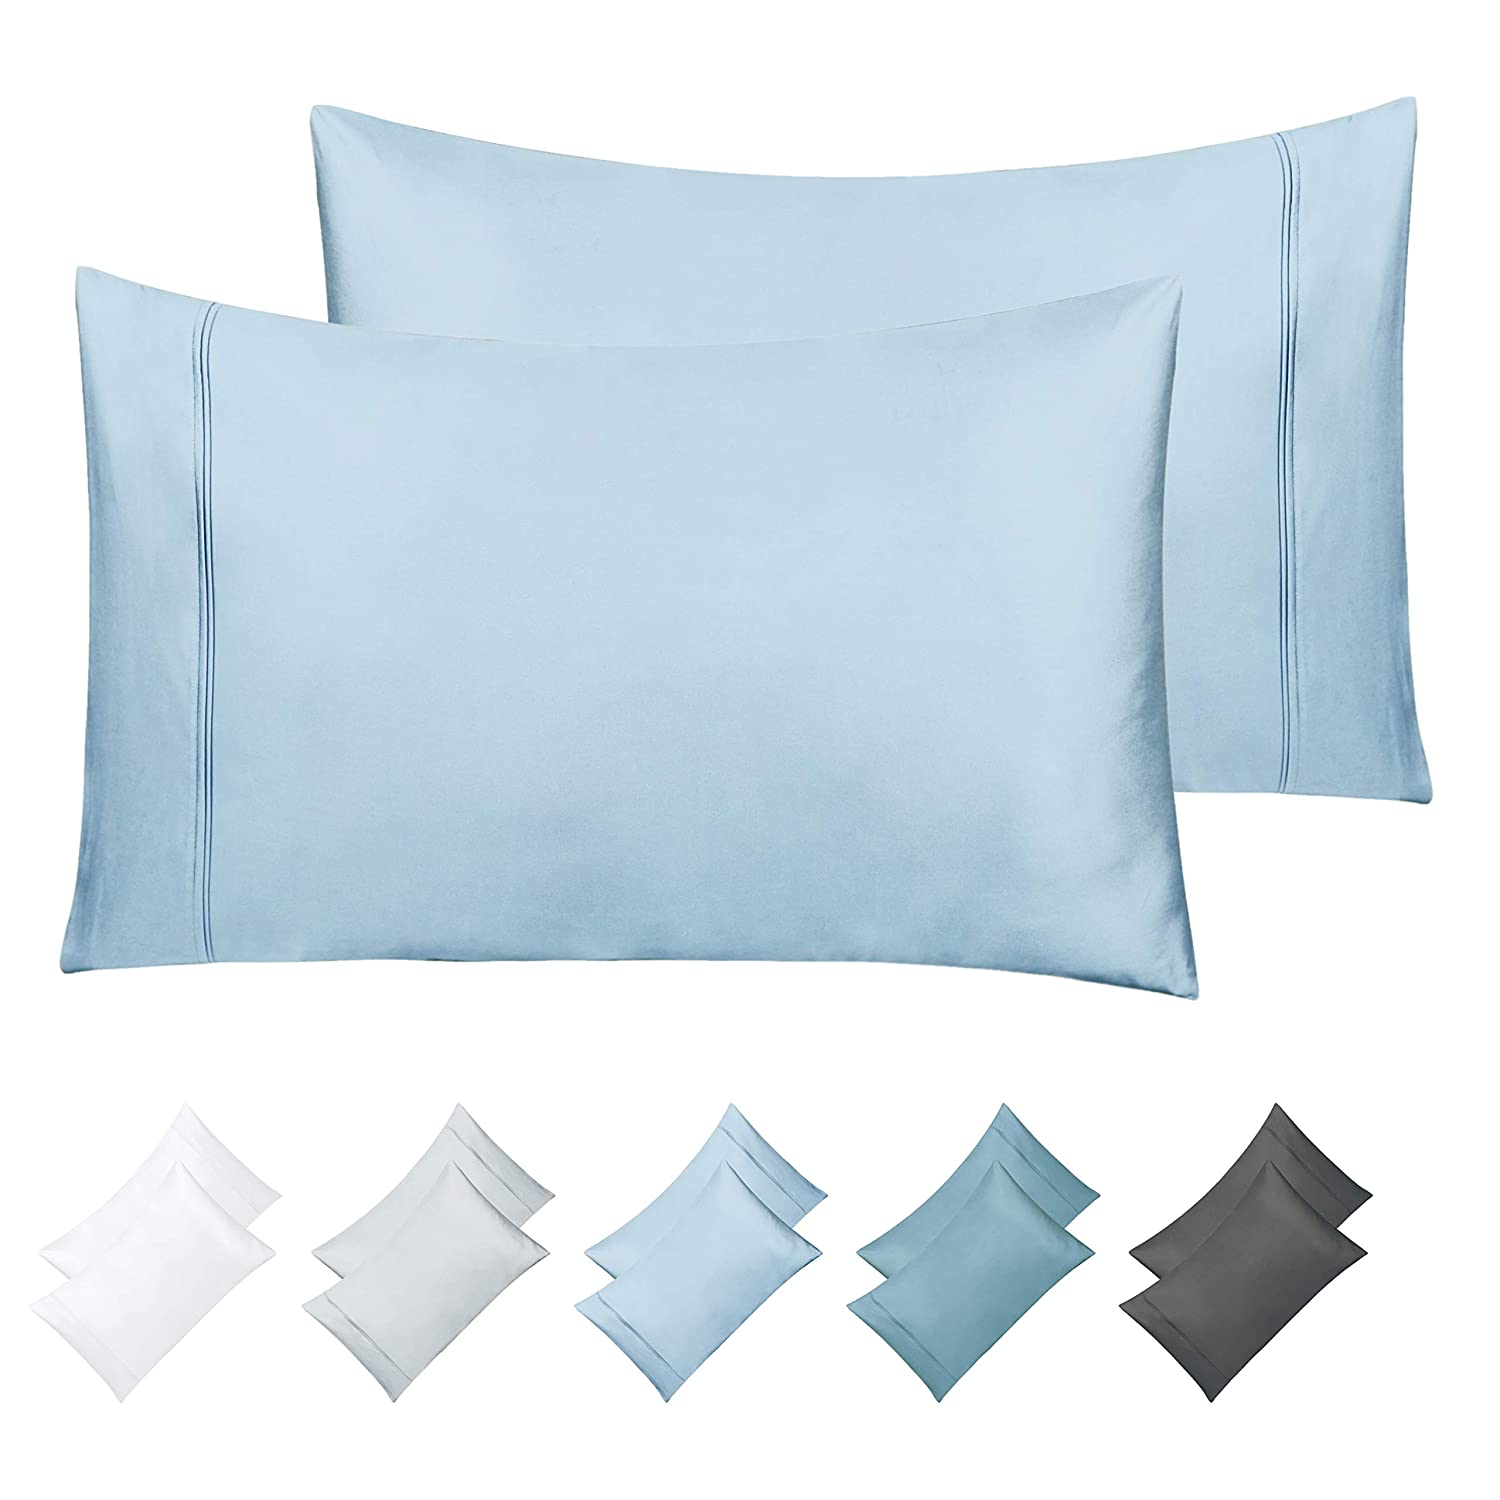 Breathable Silky Sateen Weave Poly Cotton Fits Mattress Upto 18 Deep Pocket 700-Thread-Count Cotton Blend Sheet Pure White Queen Sheets Set 4-Piece Best Bedding Sheets For Bed on